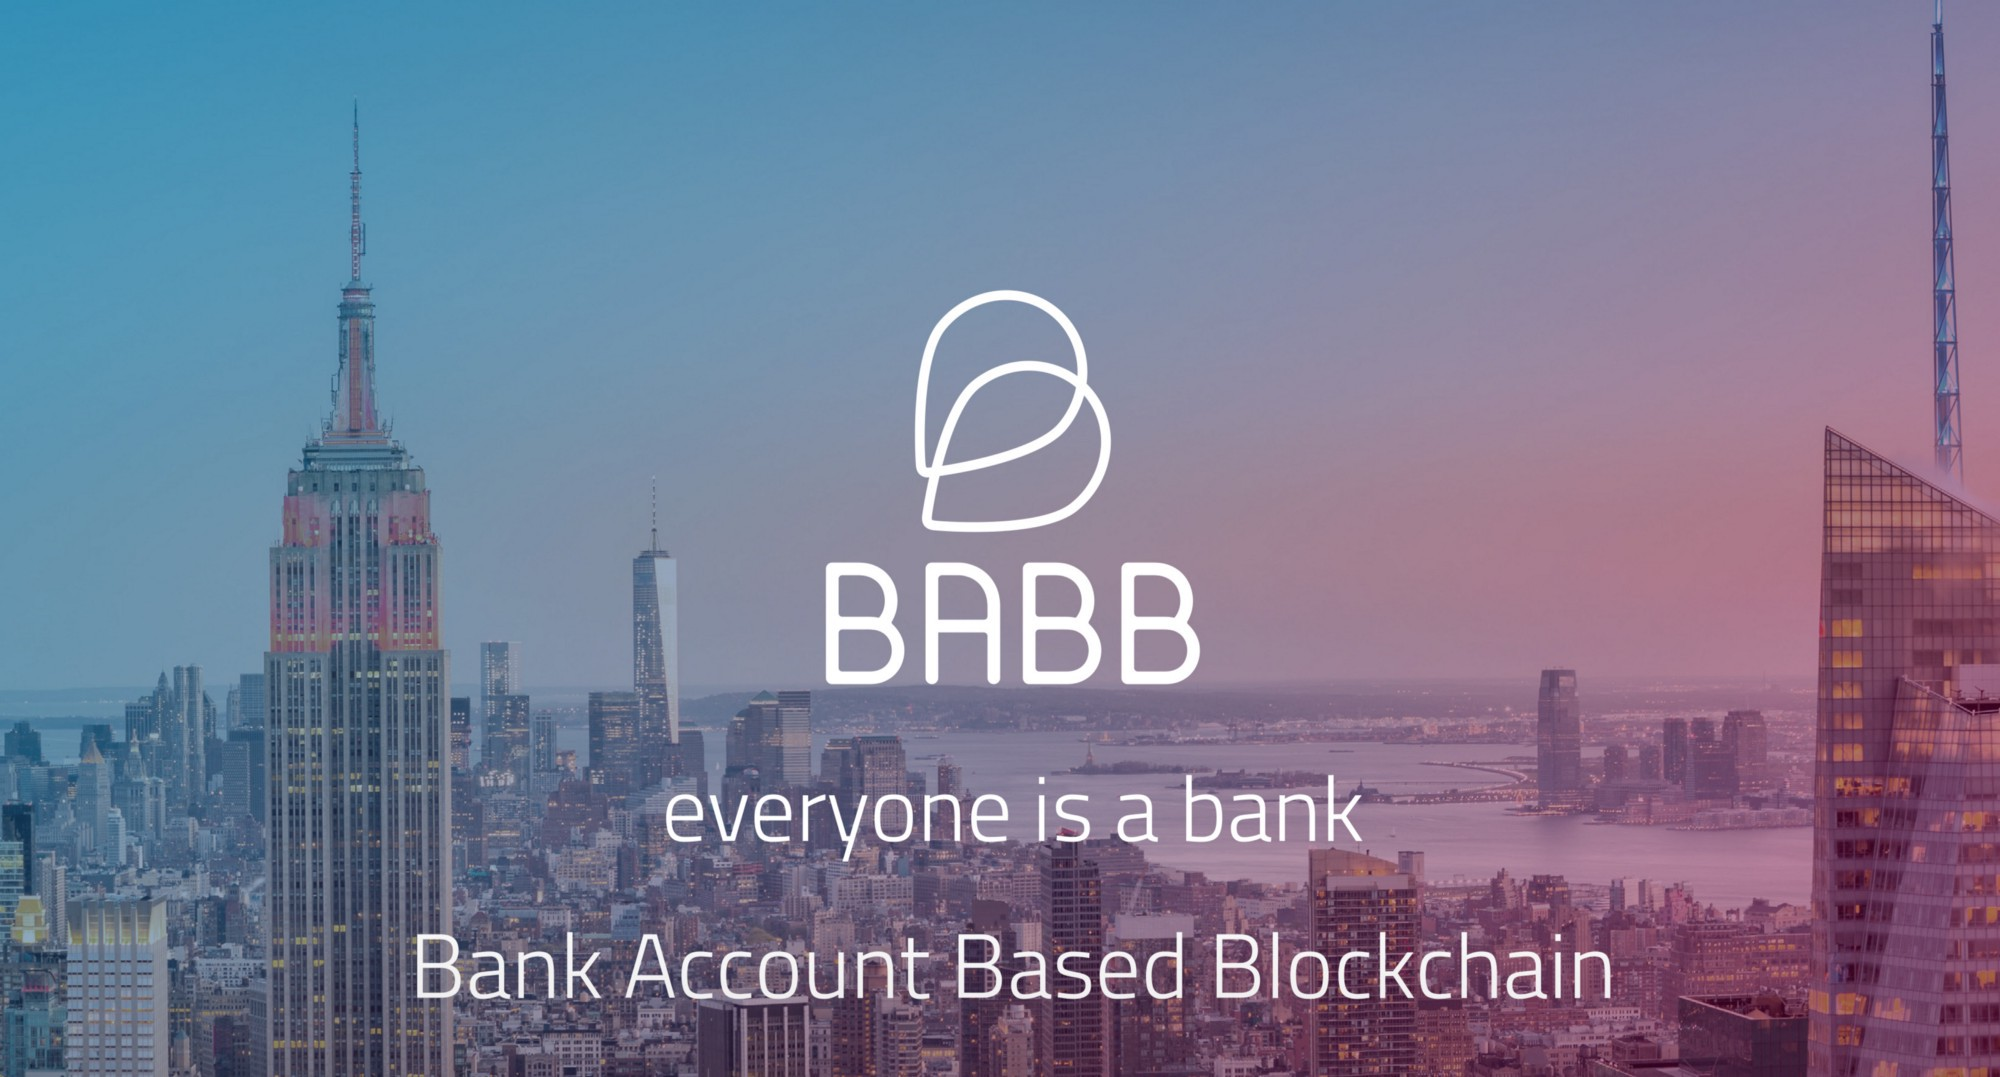 BABB live on BnkToTheFuture for qualifying investors